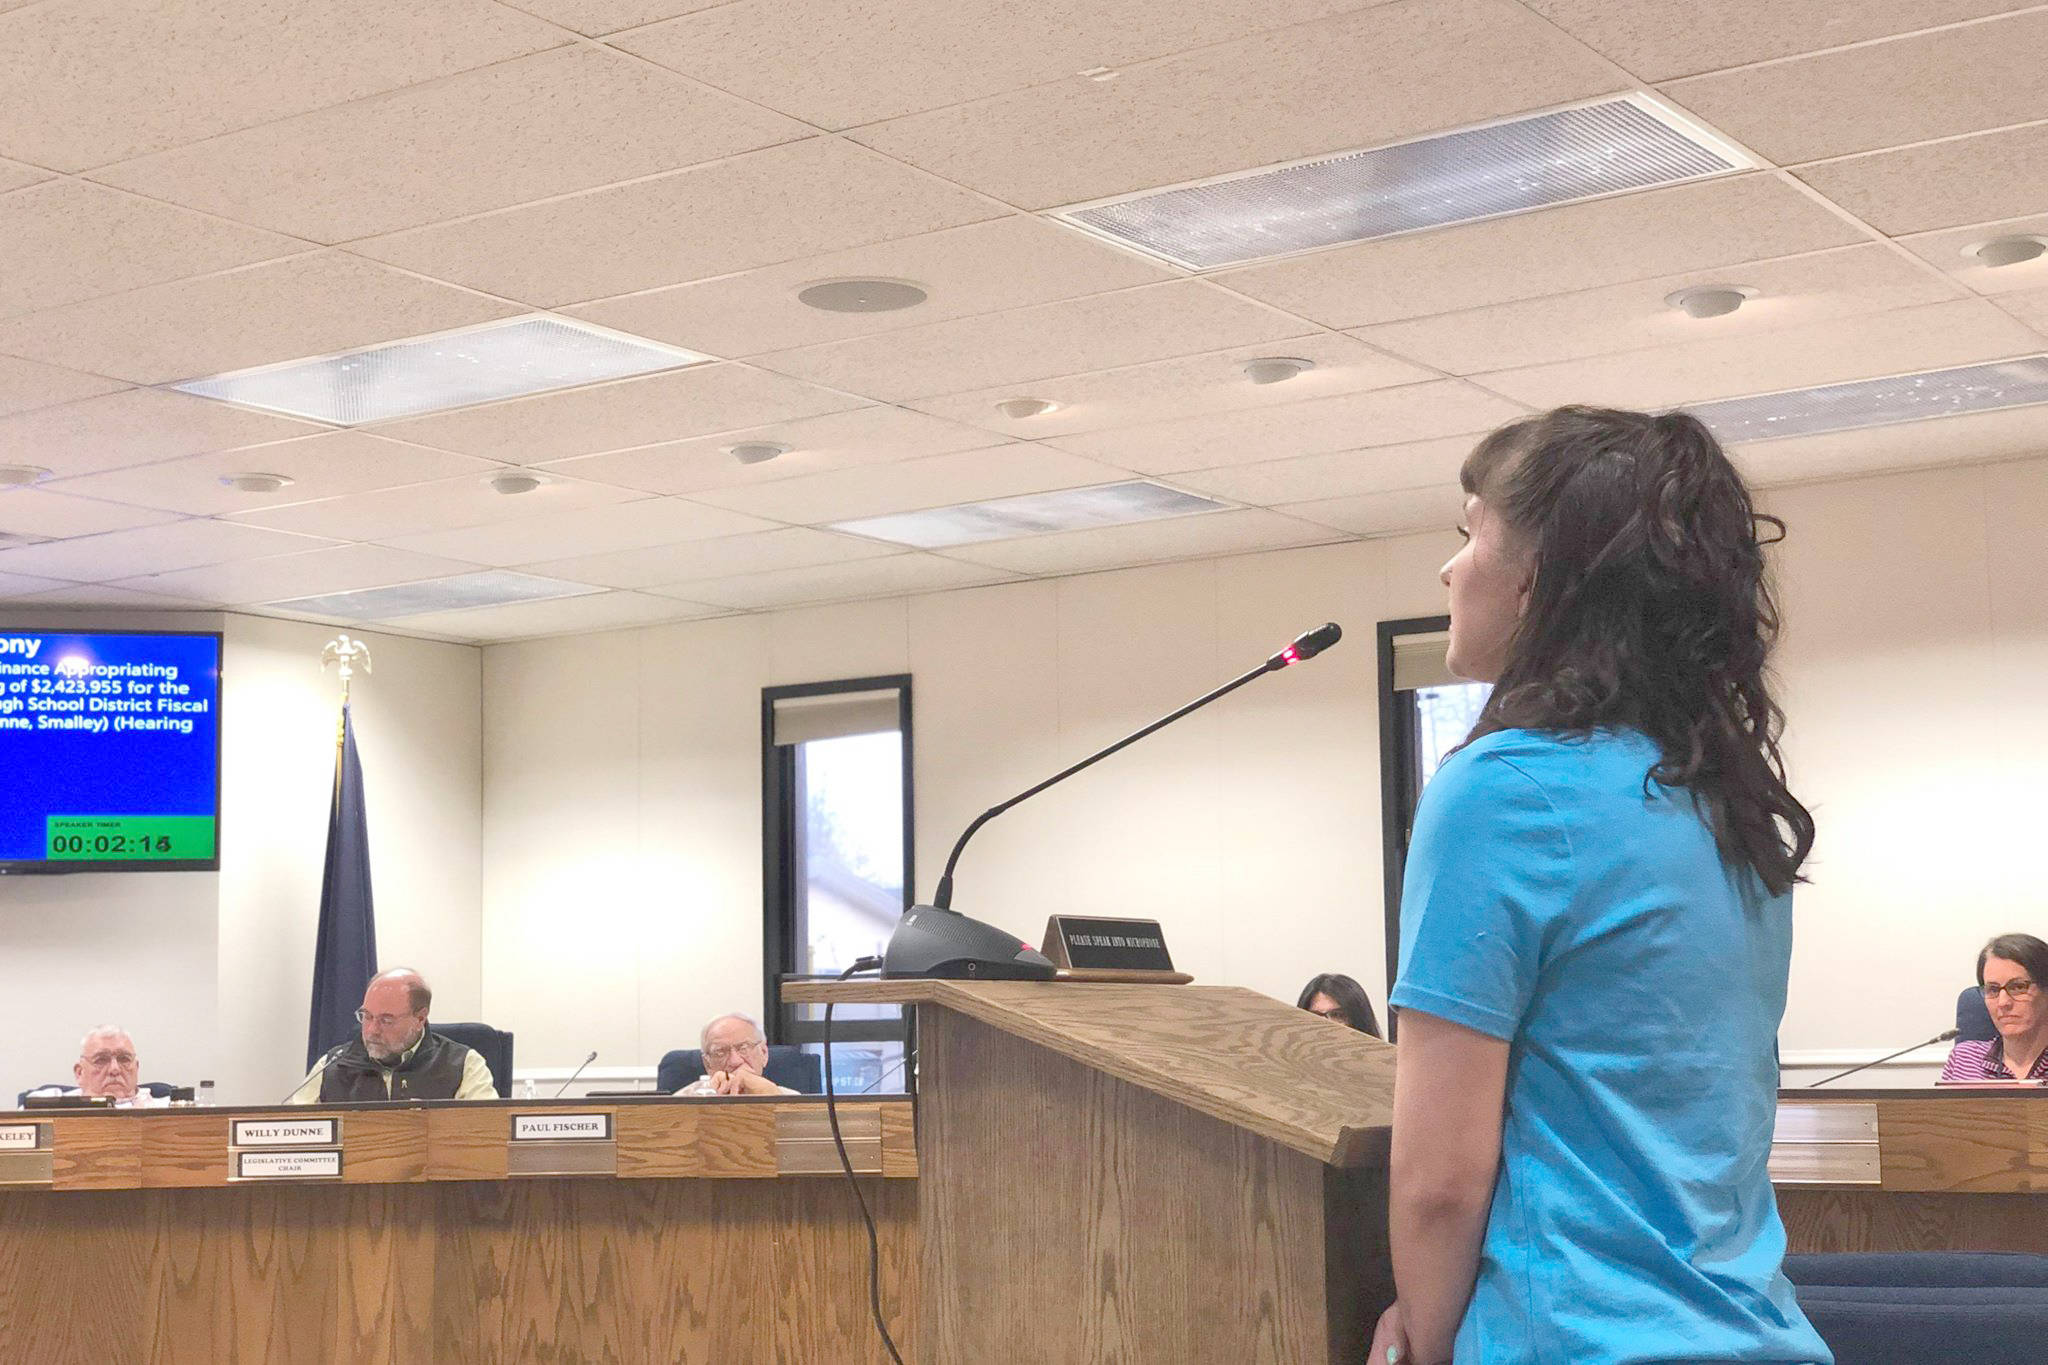 First-year Chapman School teacher Malia Larson speaks to the Kenai Peninsula Borough Assembly in support of an ordinance that will appropriate around $2.4 million to the school district in hopes of retaining some non-tenured teachers for the next school year, in Soldotna, Alaska, on Tuesday, April 2, 2019. (Photo by Victoria Petersen/Peninsula Clarion)